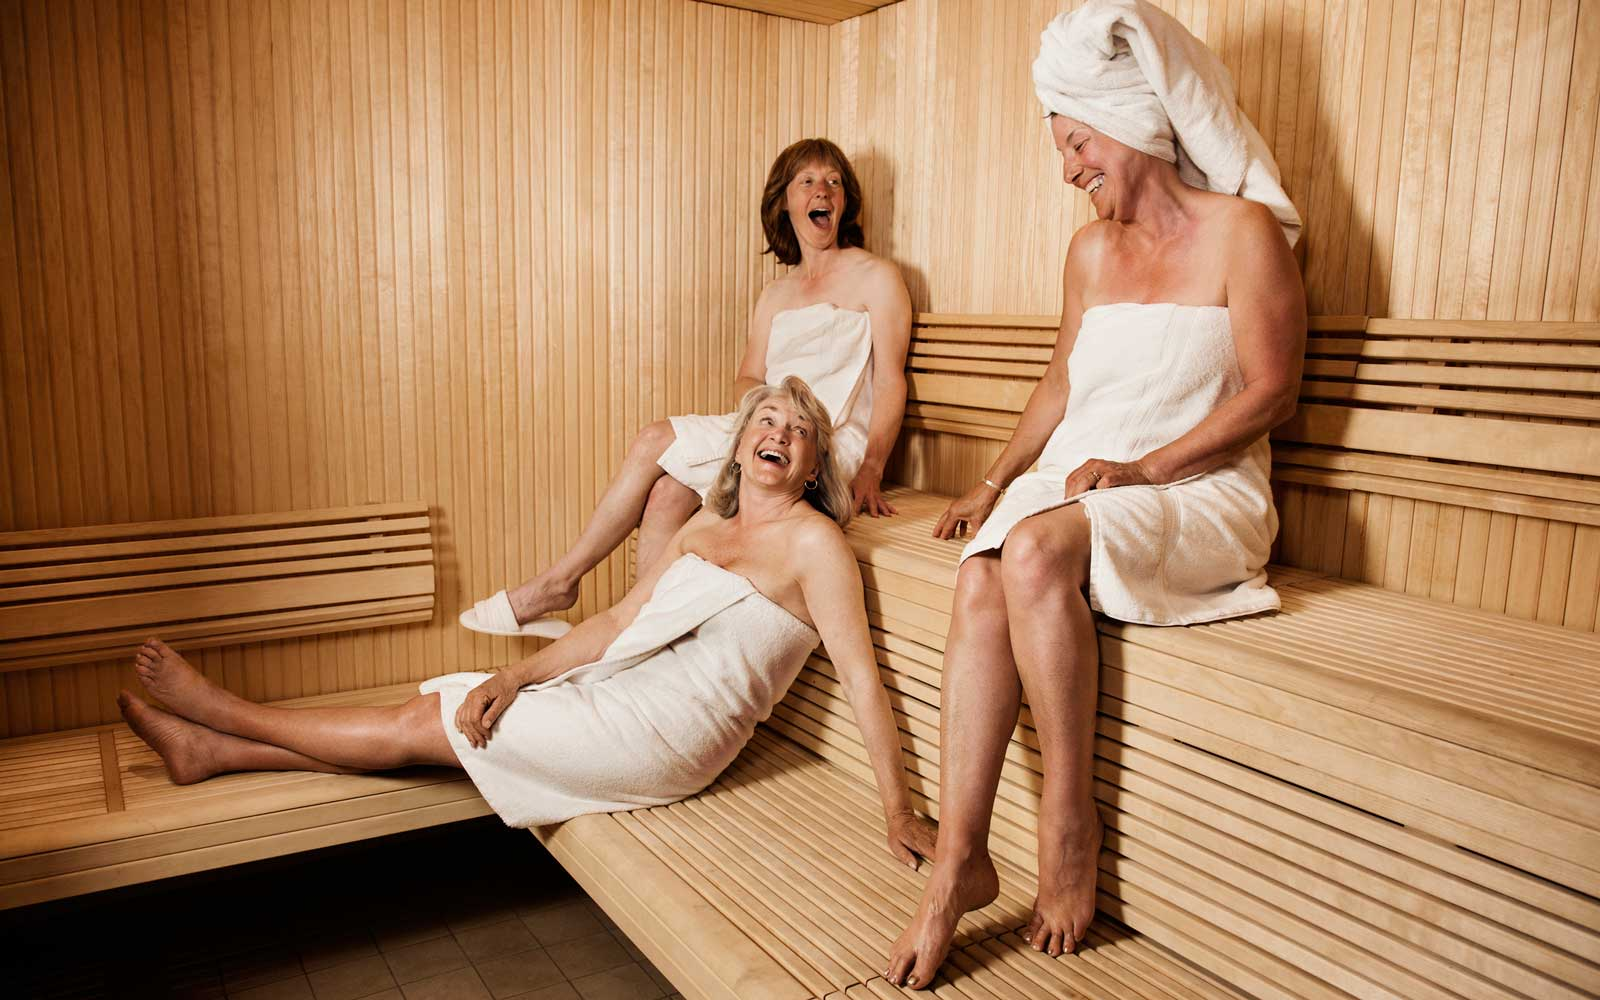 Women at Spa